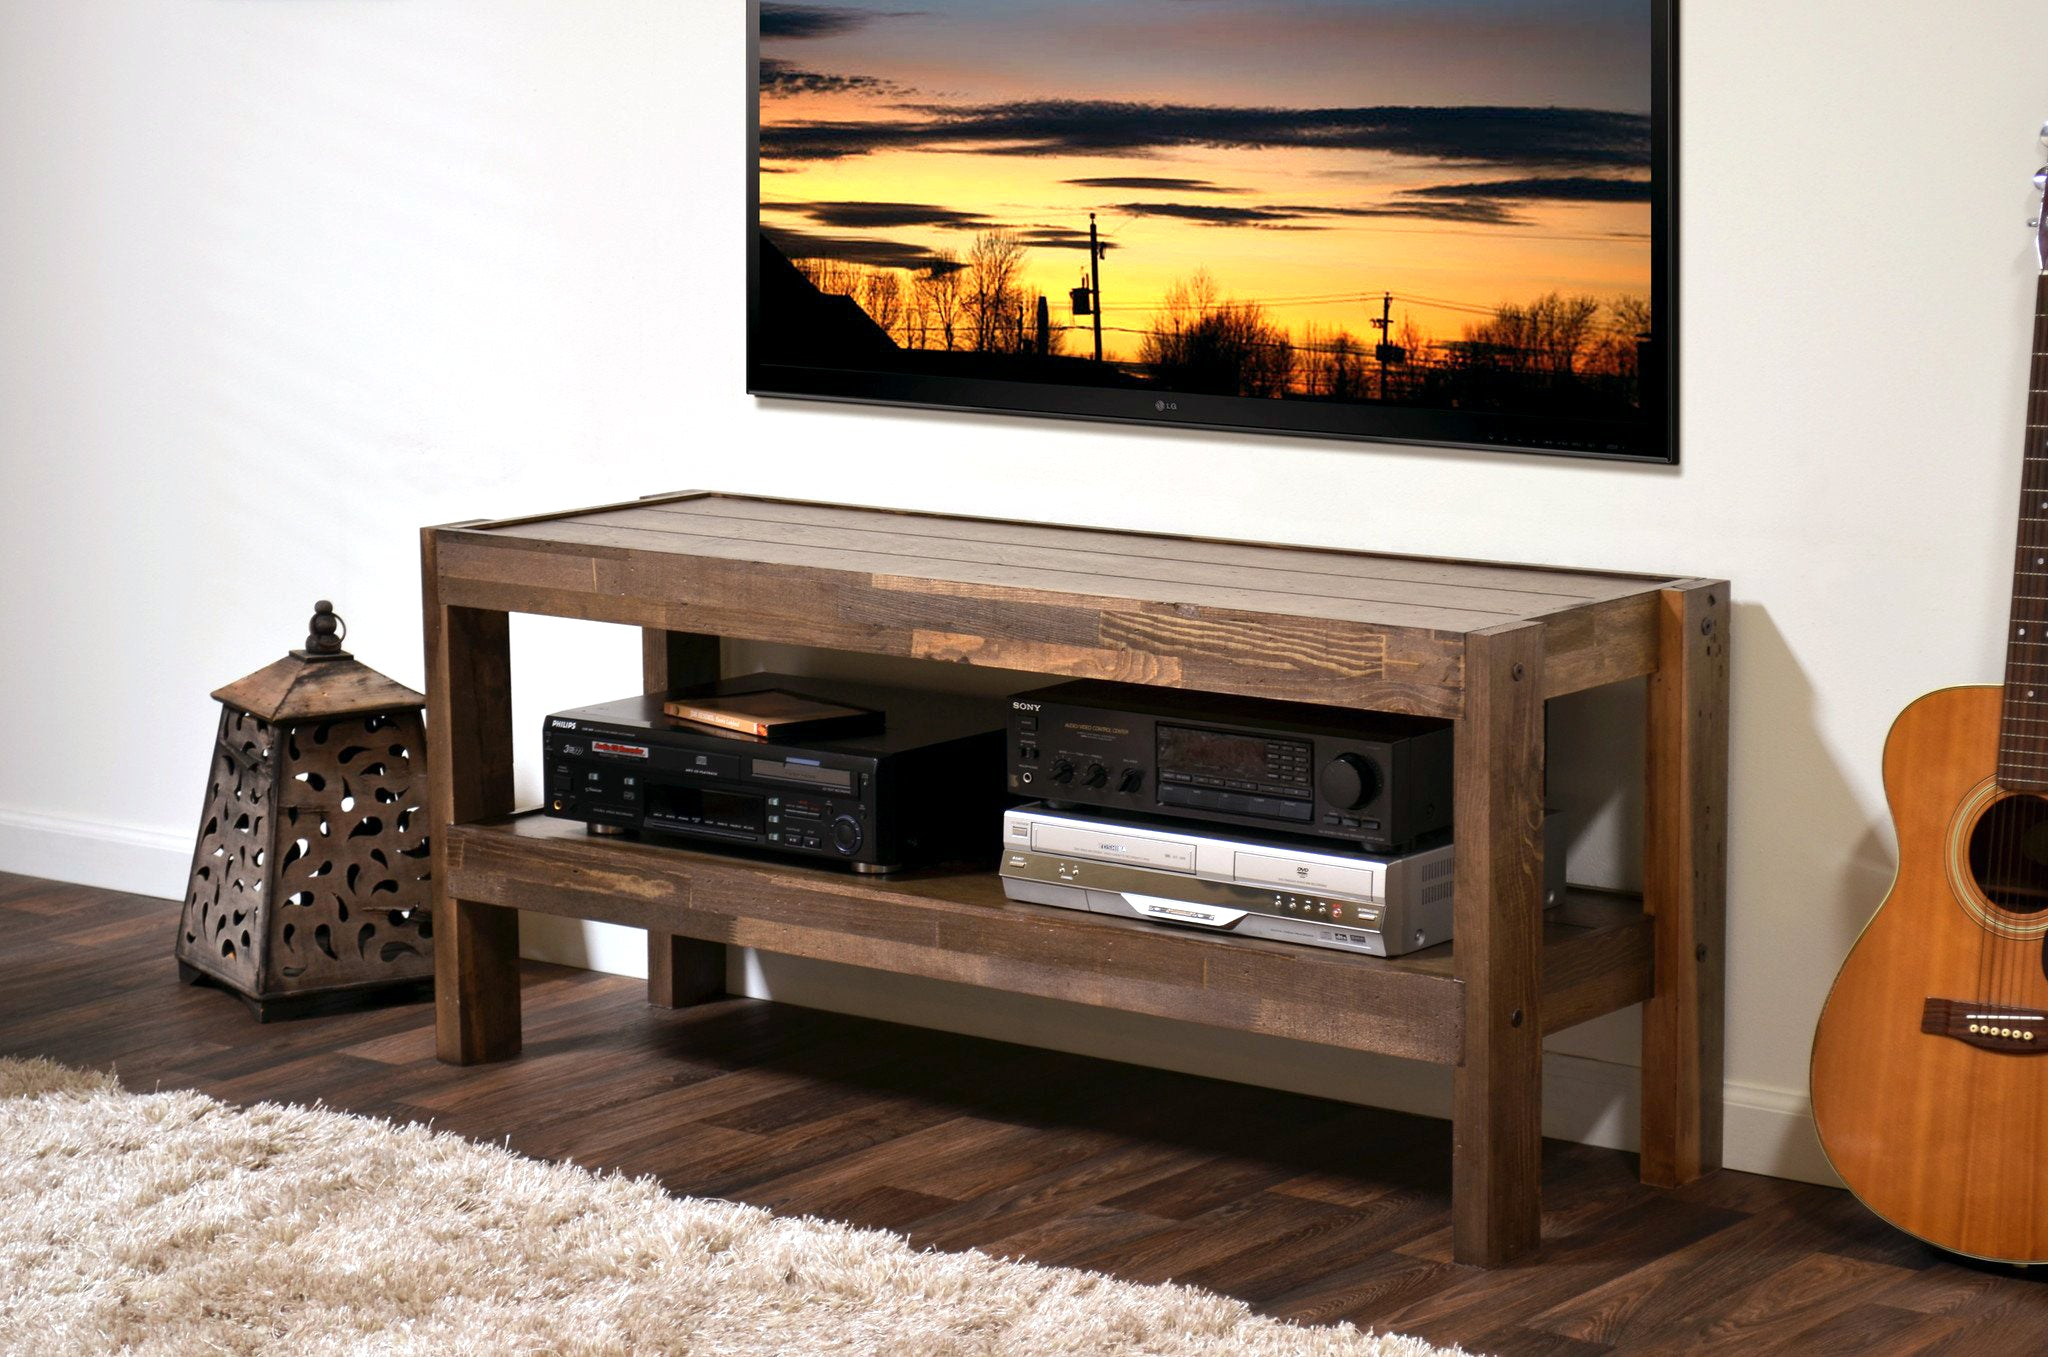 presEARTH Spice Rustic Reclaimed Barn Wood Style TV Stand